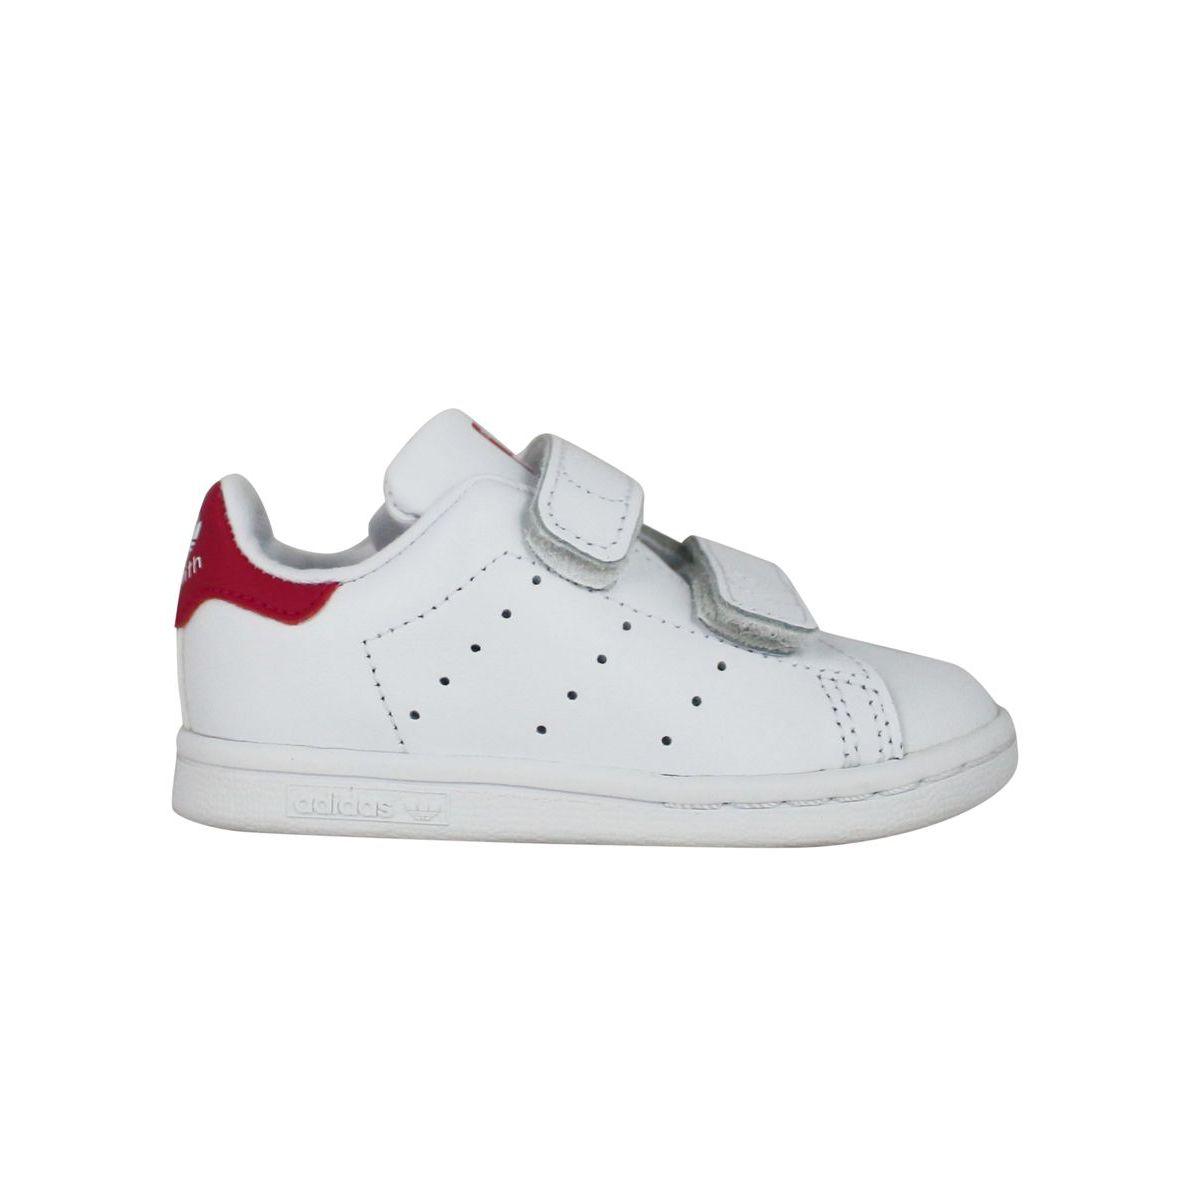 Sneakers Stan Smith with tears White / fuchsia Adidas